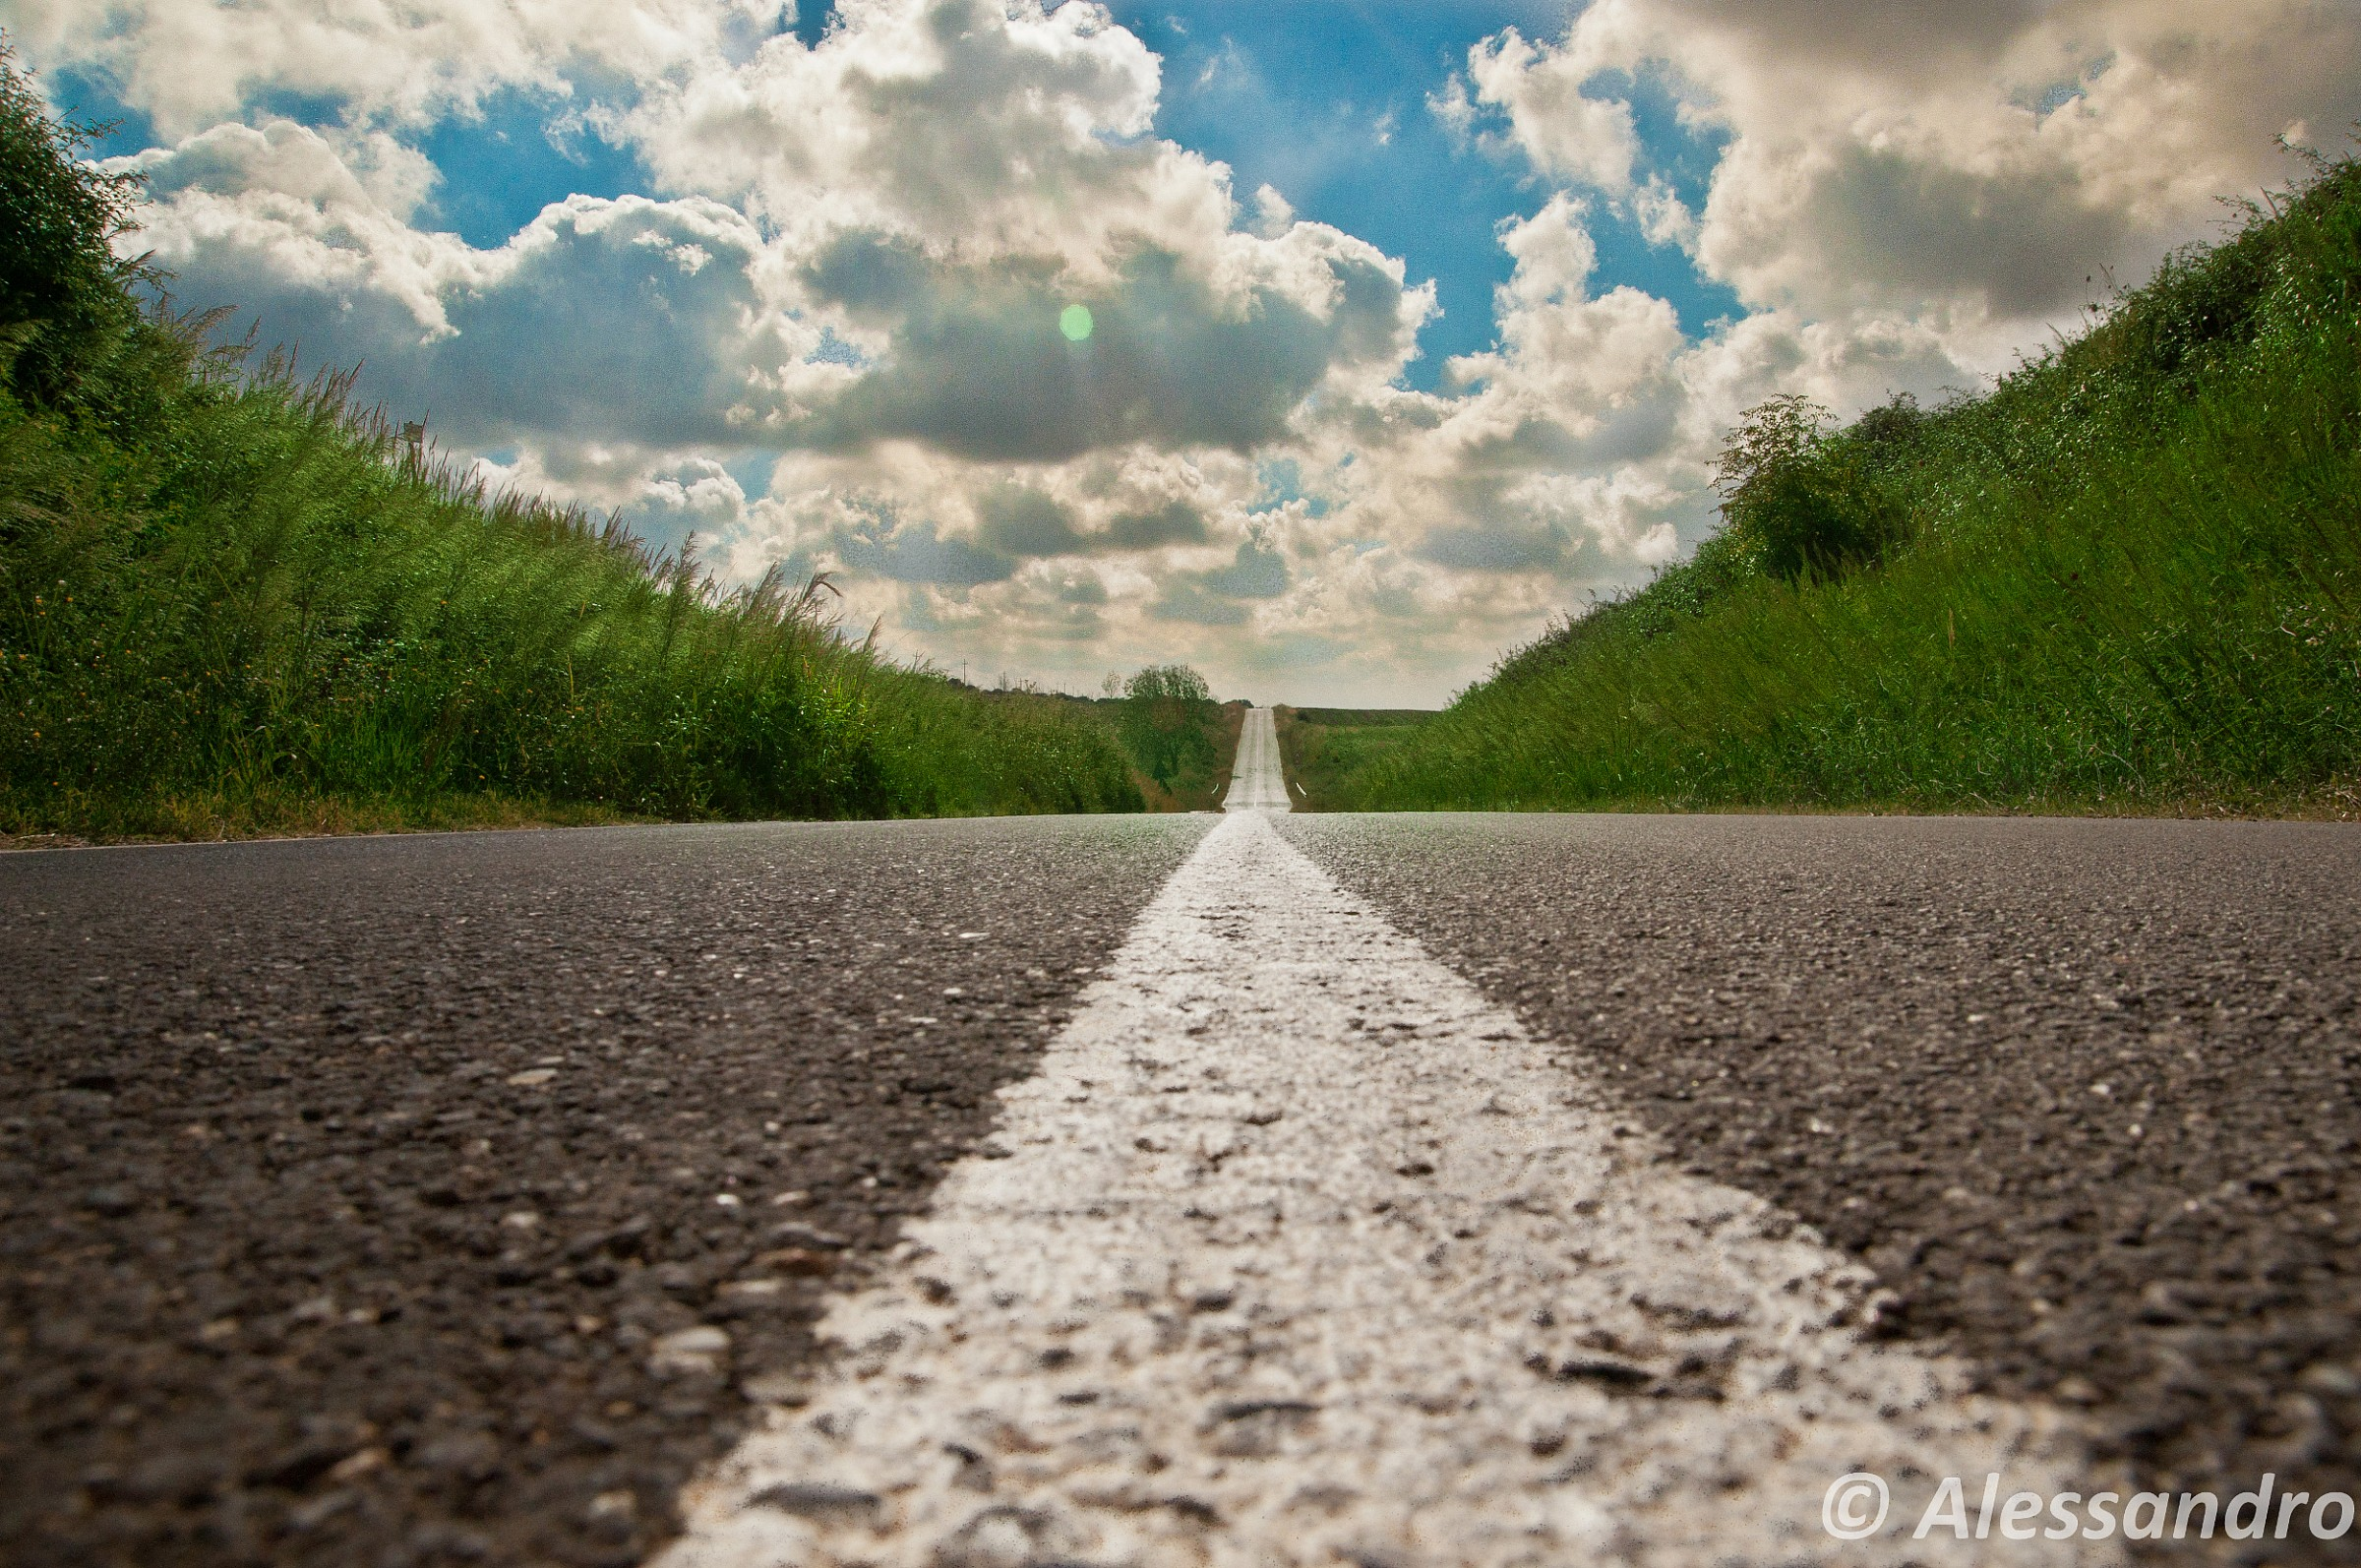 The long road...